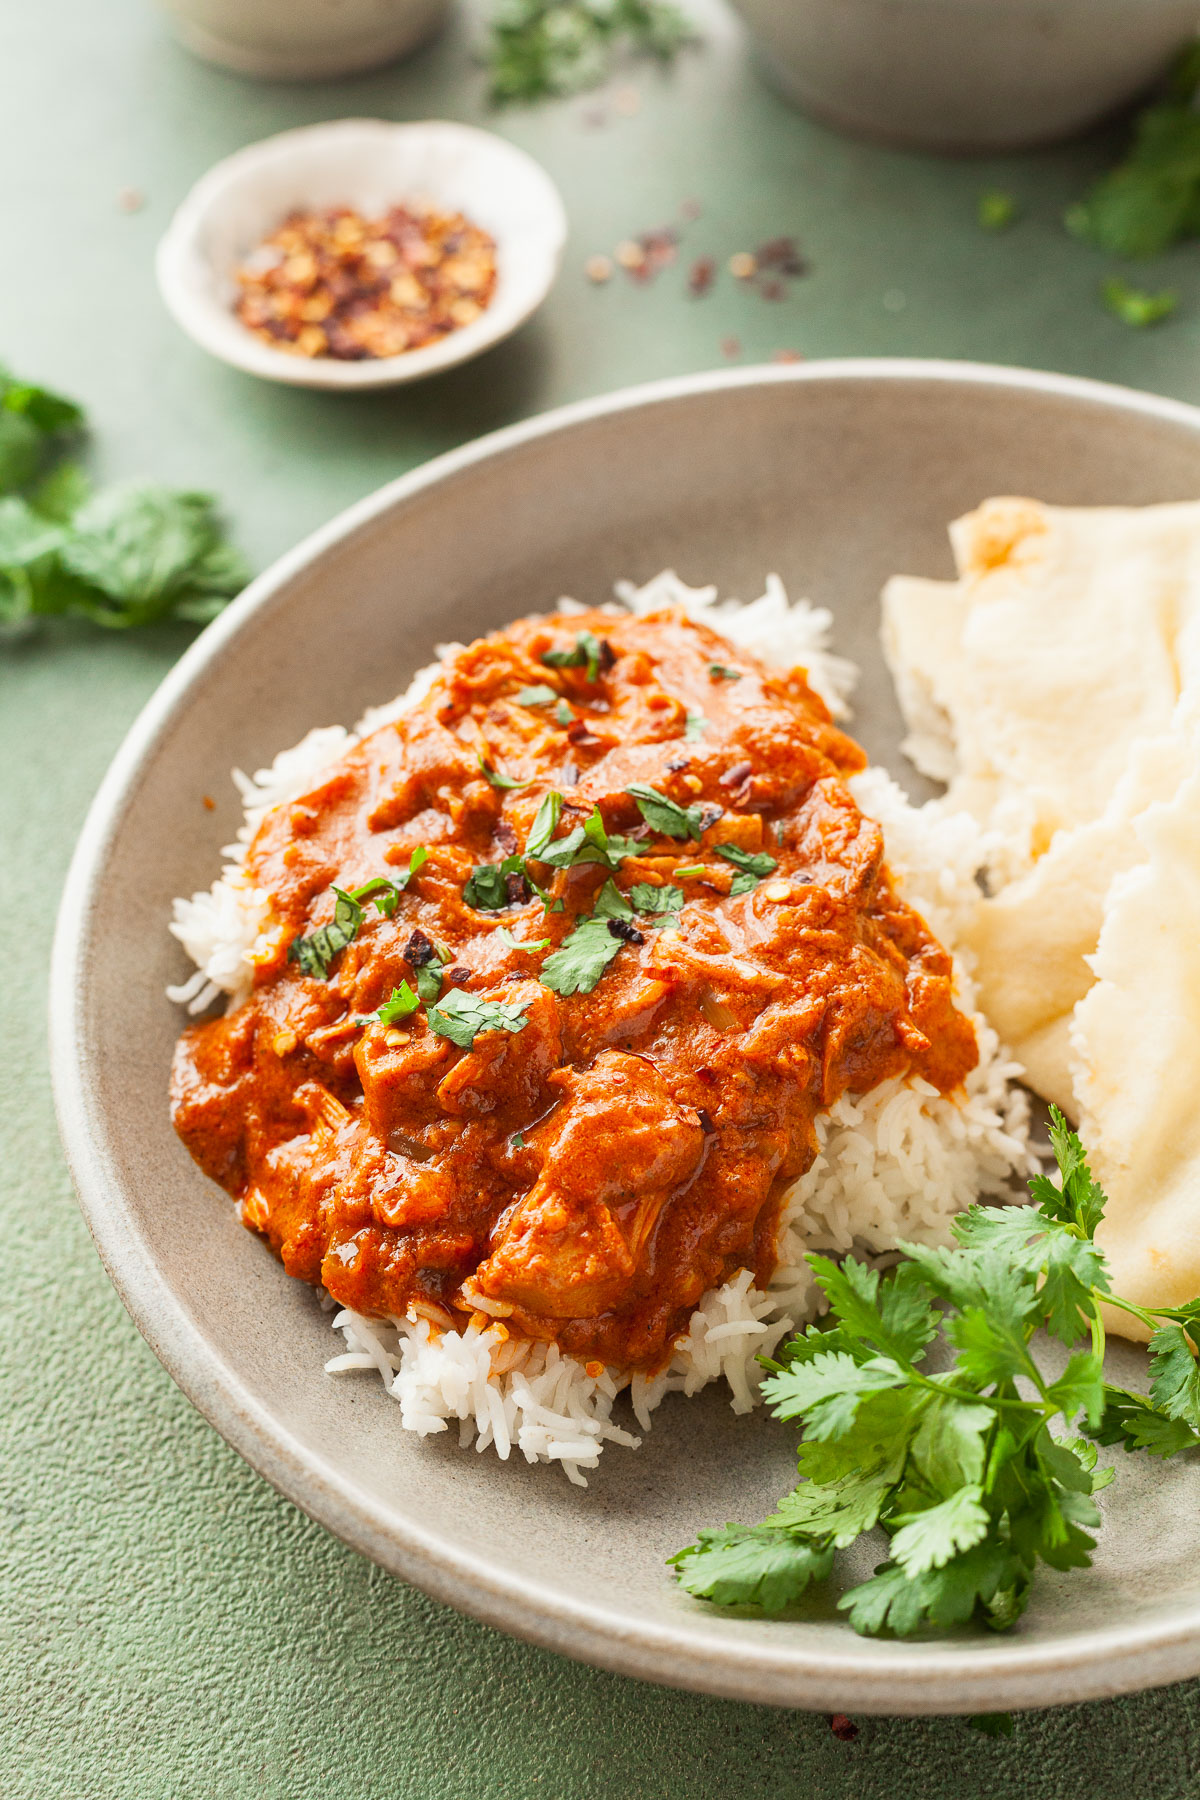 a plate with rice, naan and crock pot vegan butter chicken